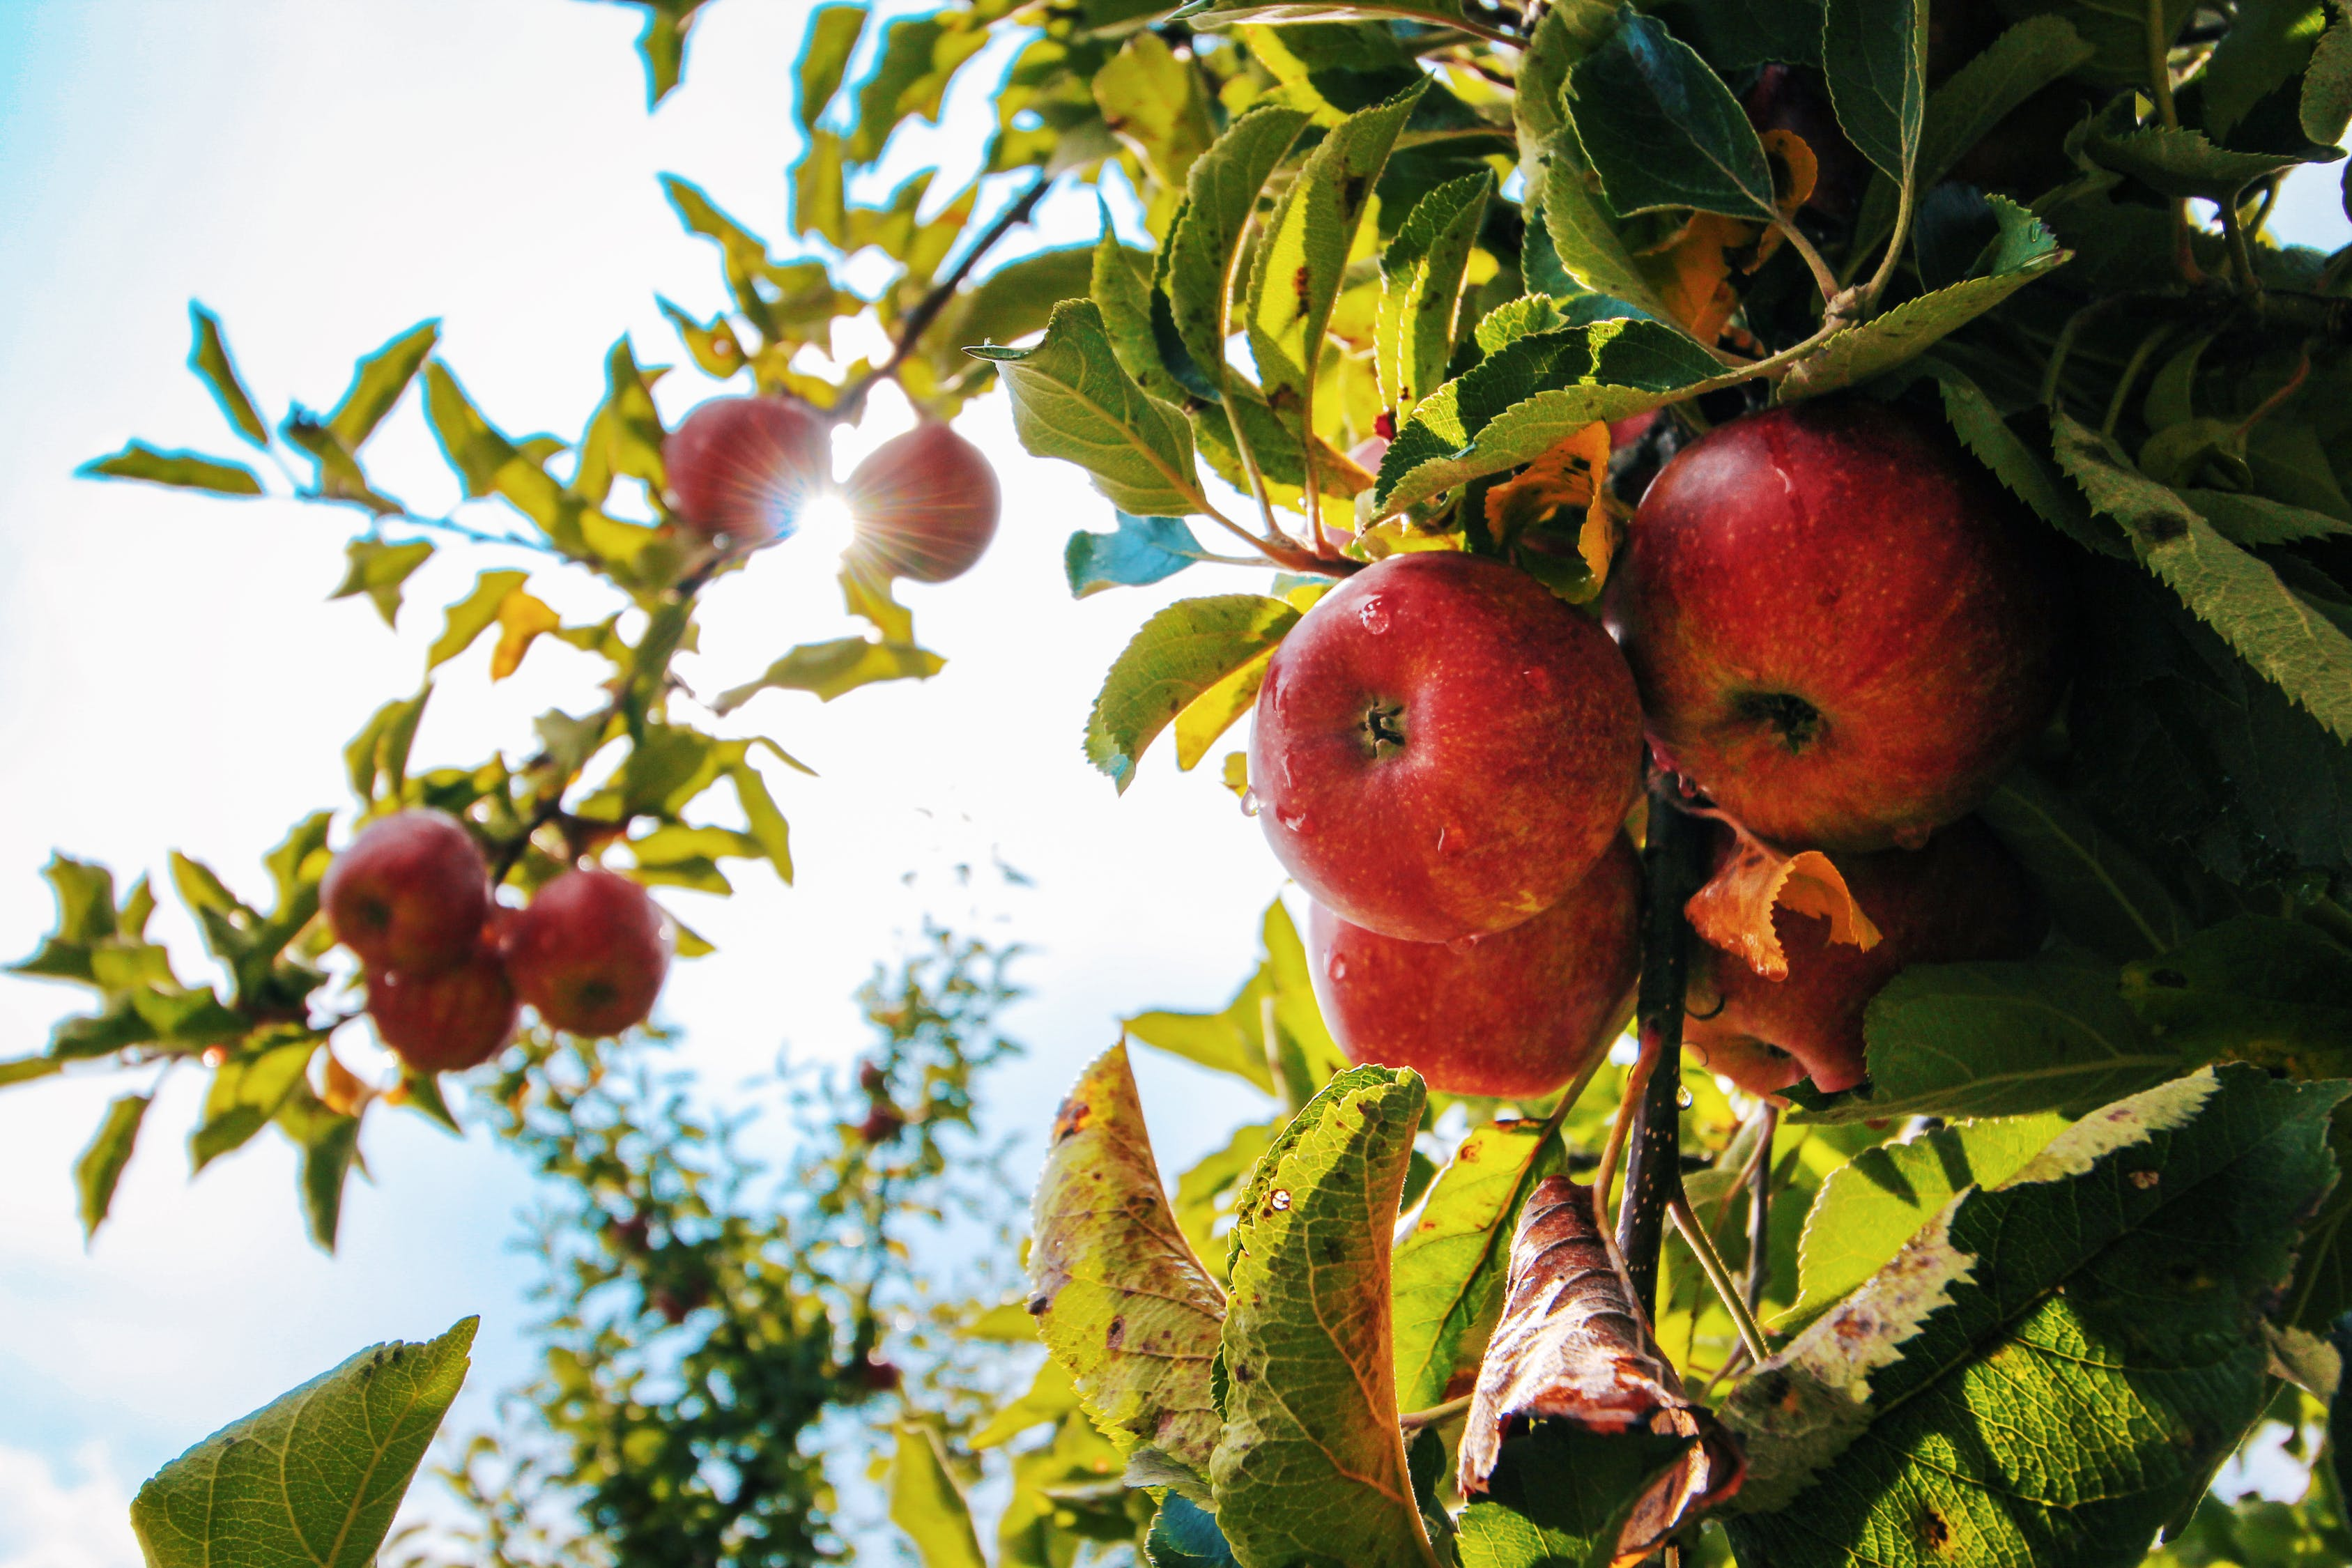 Frost Damage May Reduce Fruit Harvest By 40% In Hungary